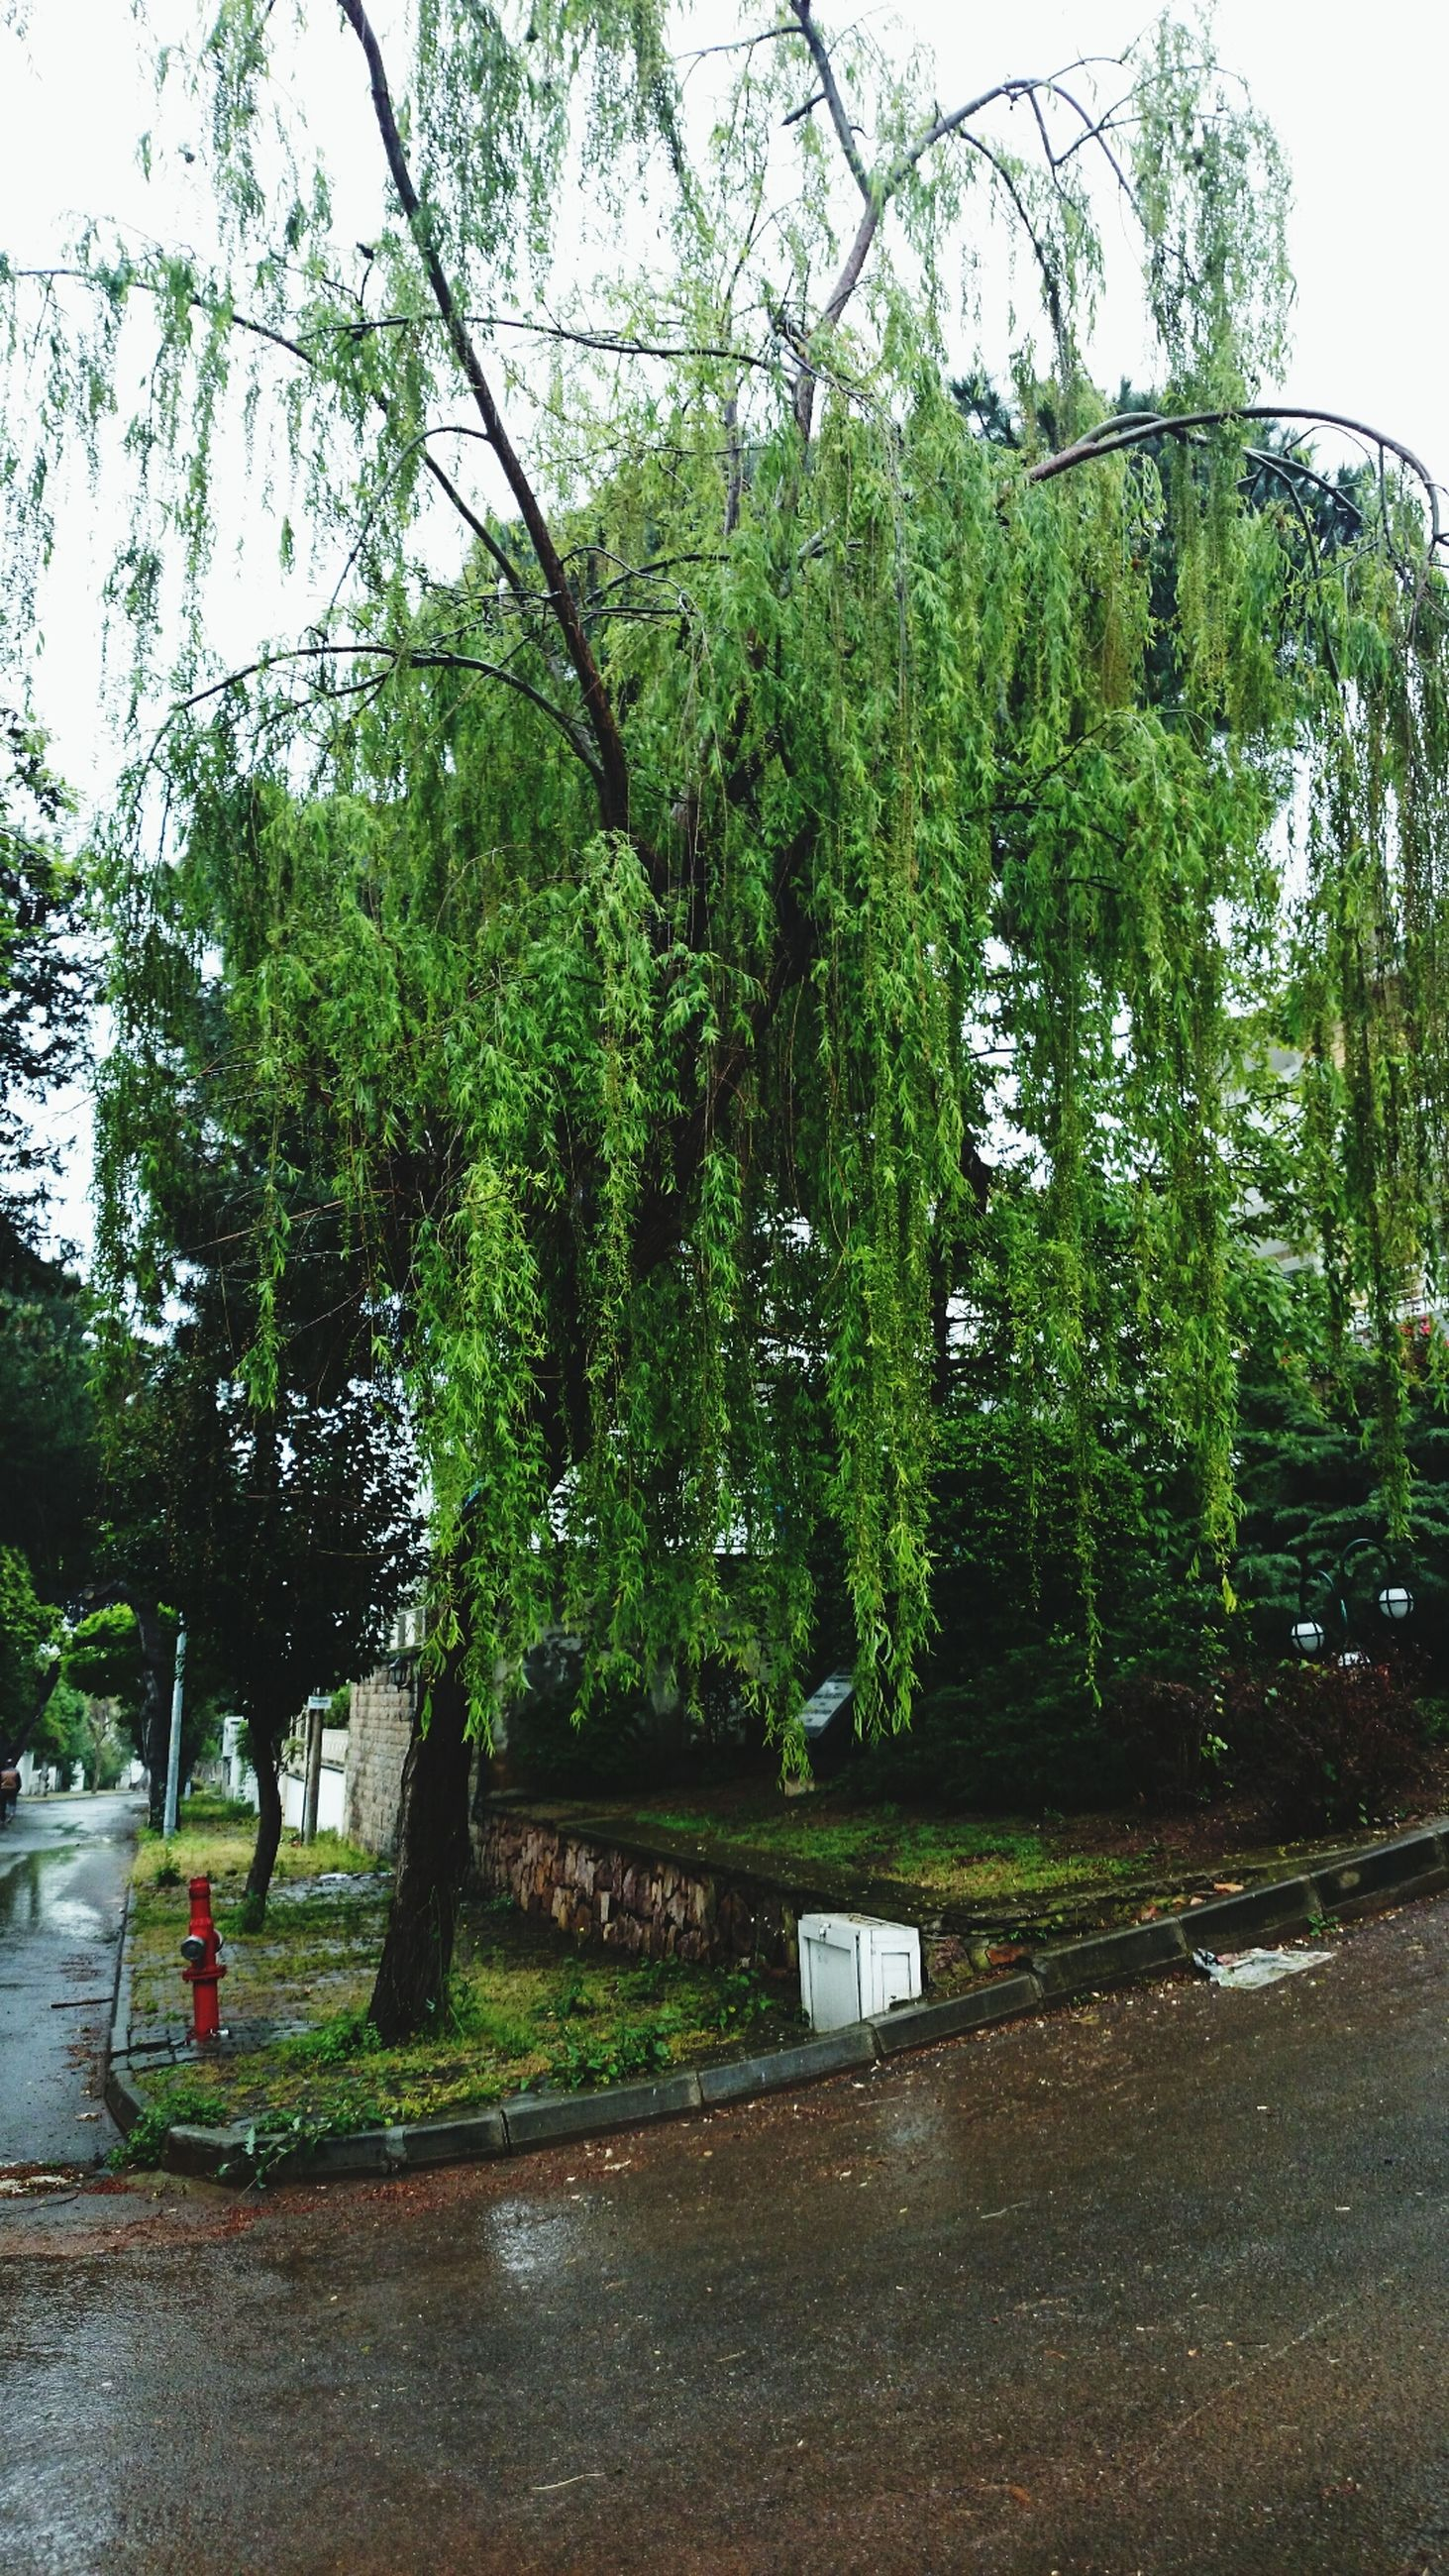 tree, growth, green color, nature, plant, road, water, tranquility, sky, beauty in nature, park - man made space, branch, day, street, tranquil scene, built structure, outdoors, clear sky, growing, transportation